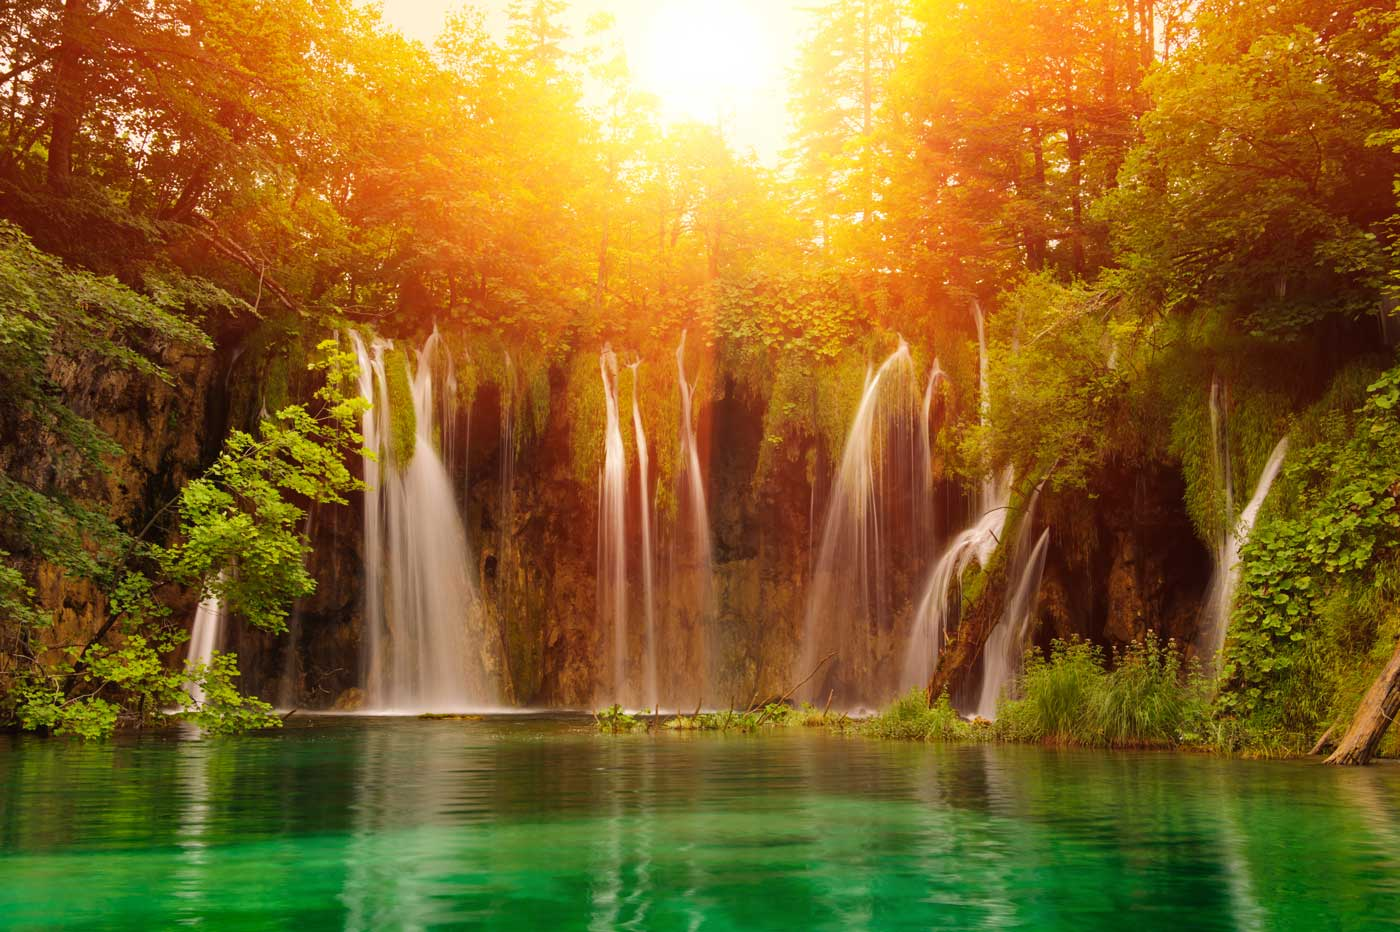 Explore Plitvice Lakes National Park – a place like no other